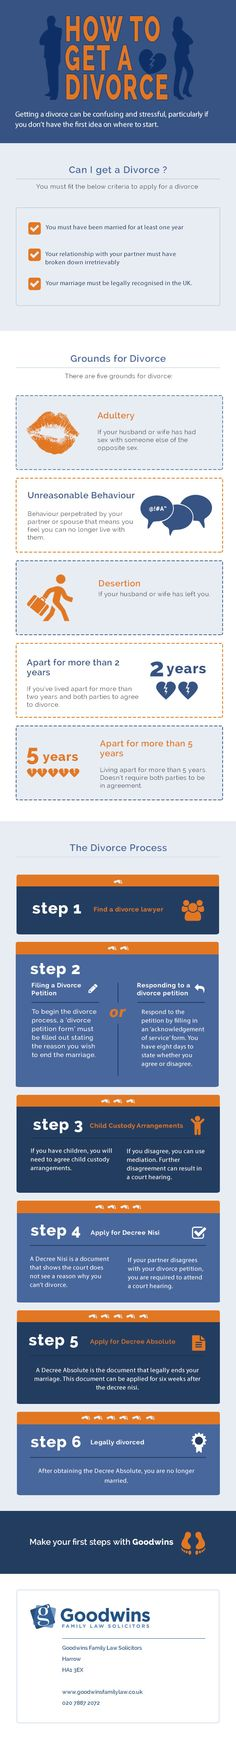 How to get a Divorce in England [INFOGRAPHIC]